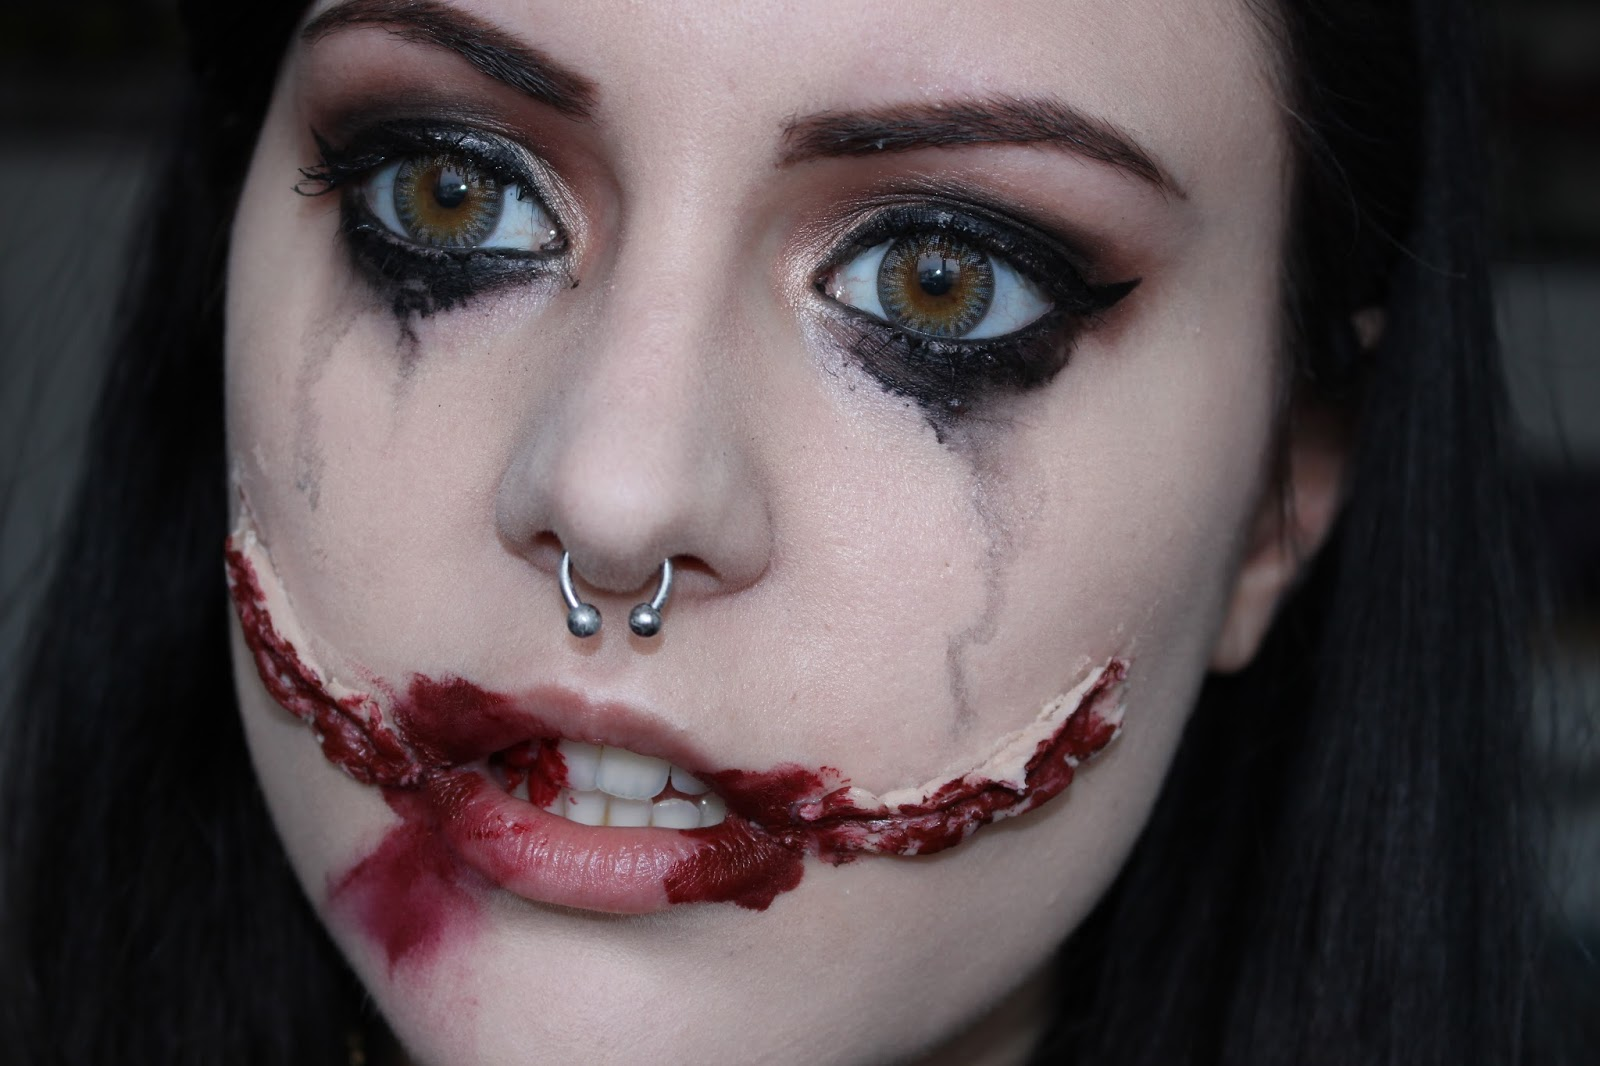 KITTENMOUSTACHE: Halloween: Chelsea Smile/Black Dahlia